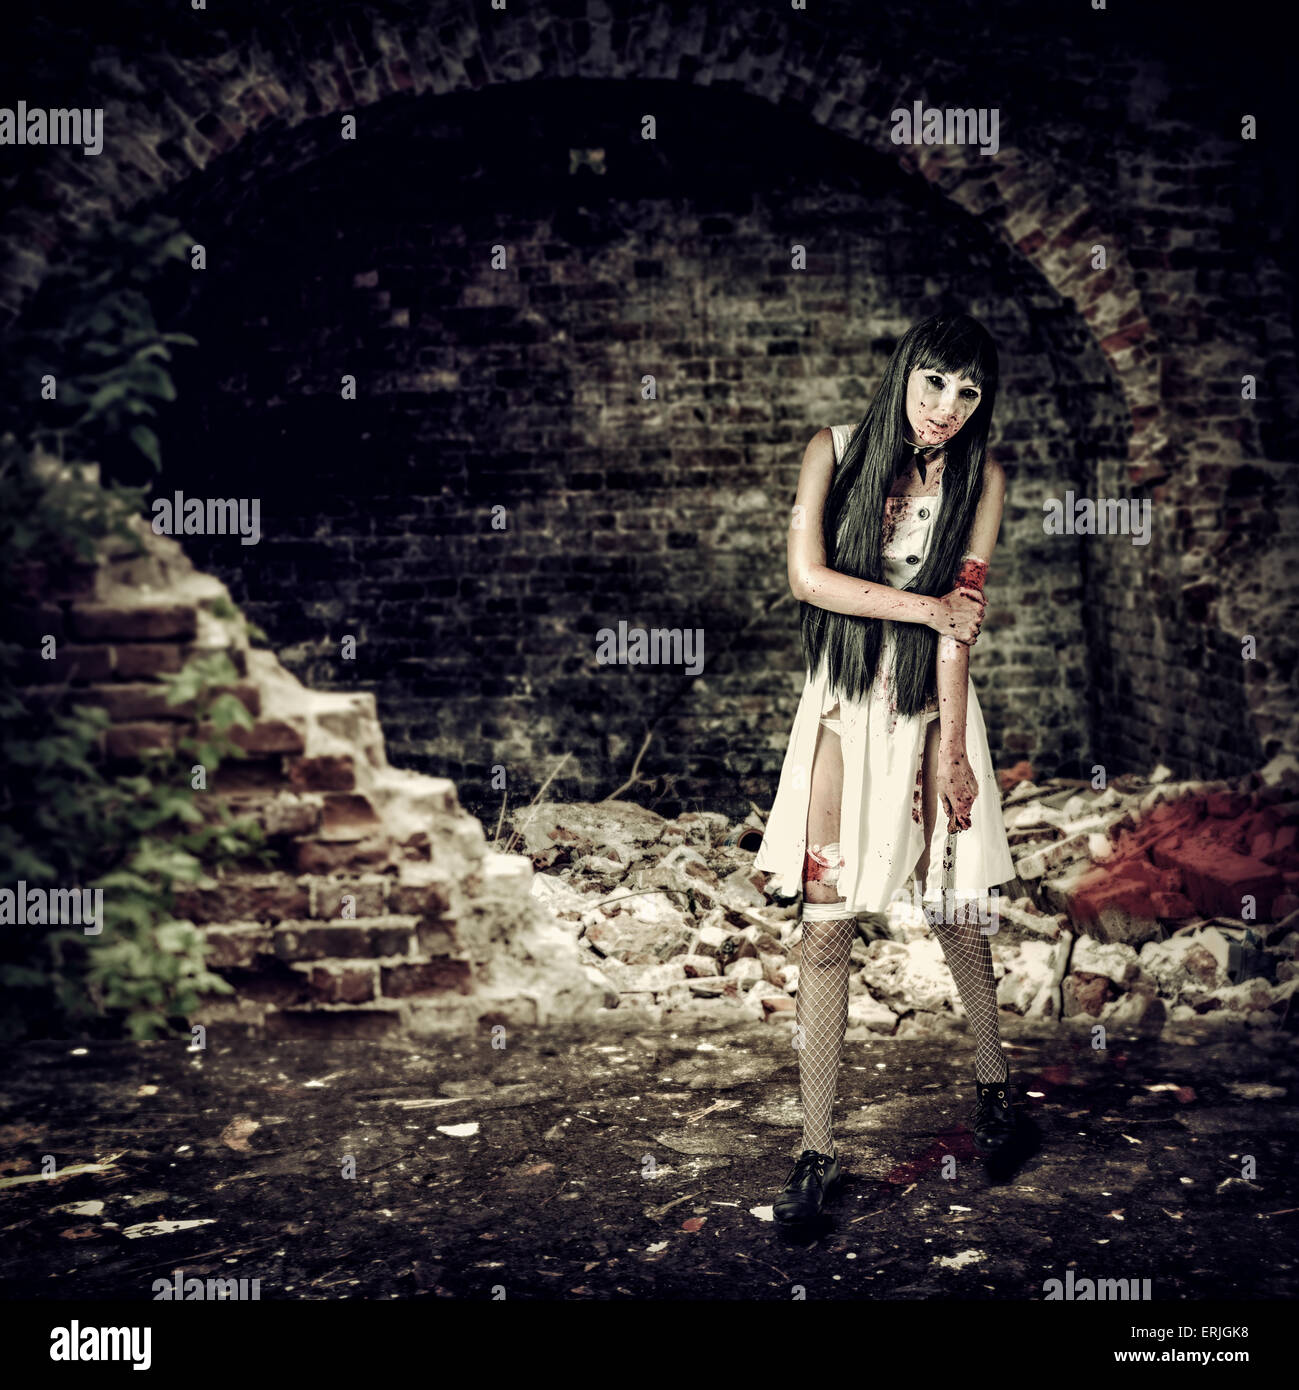 Female zombie with blood holding knife in ruins - Stock Image